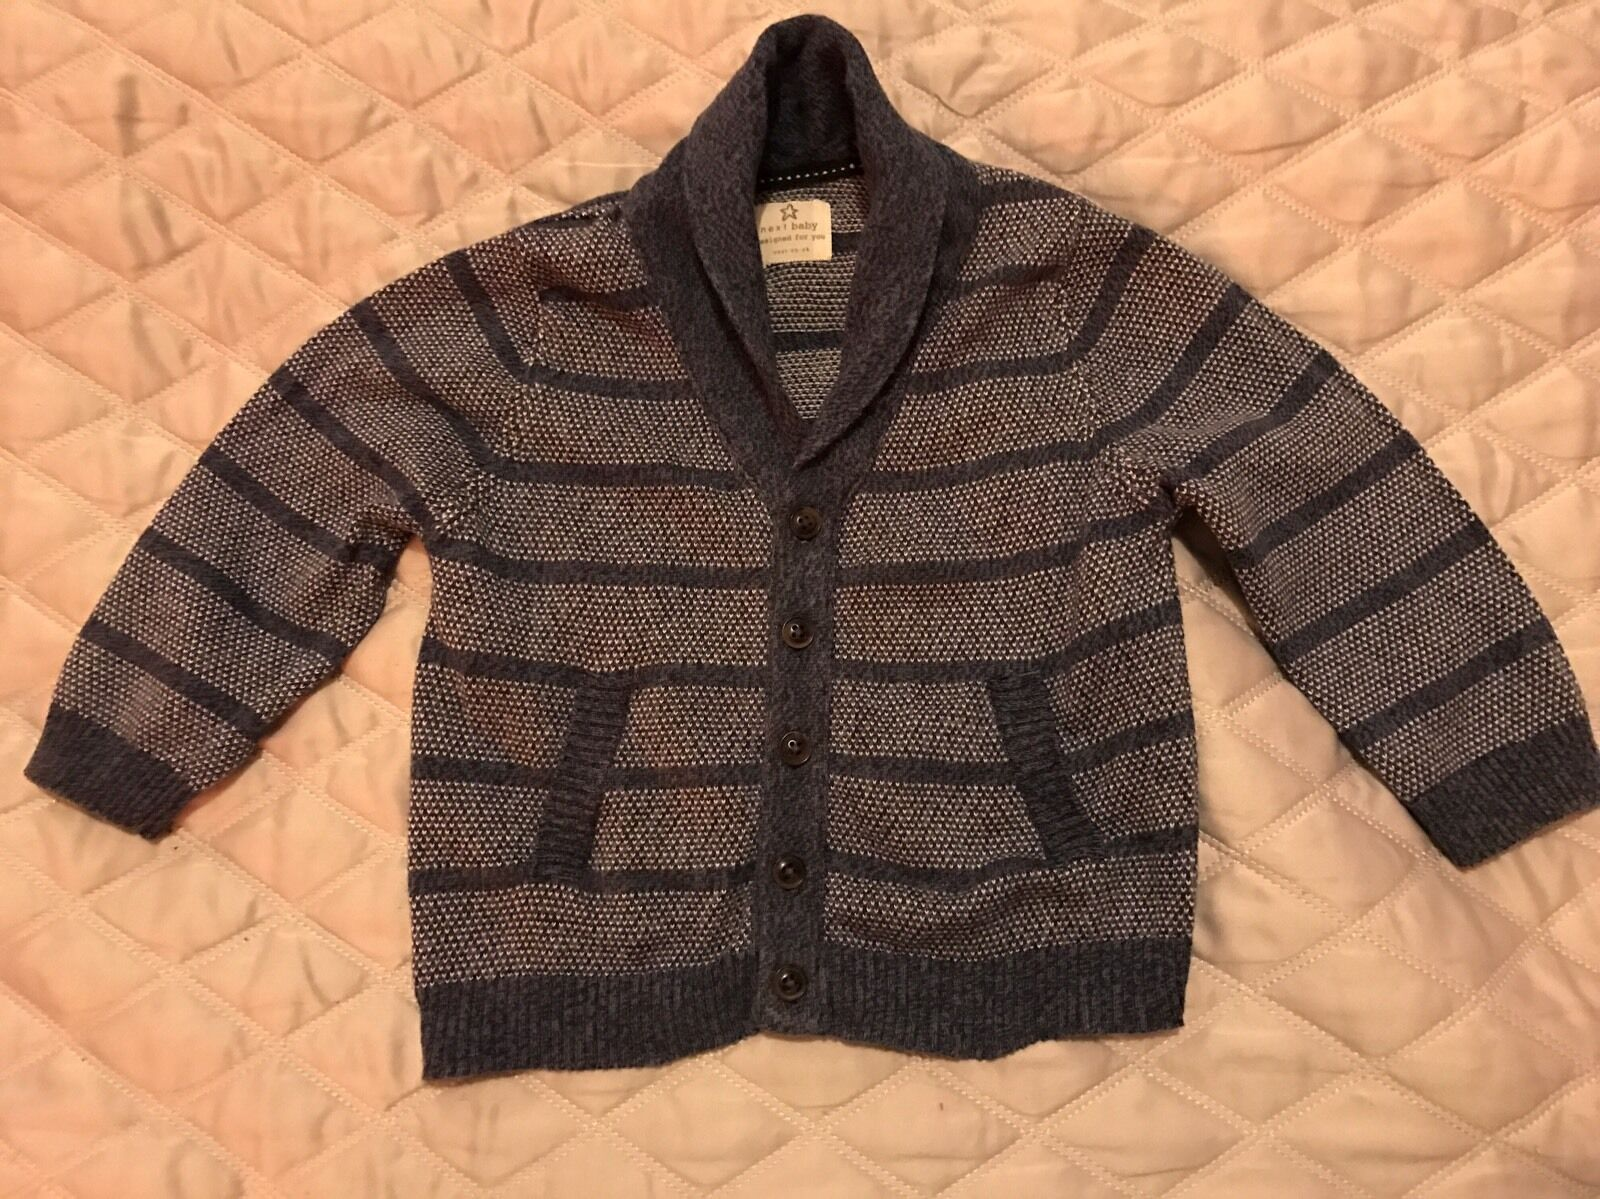 Knitting Pattern Cardigan For 18 Months : Baby Boys Knitted Next Cardigan, 12-18 Months, Navy and Blue Striped   ?0.99 ...